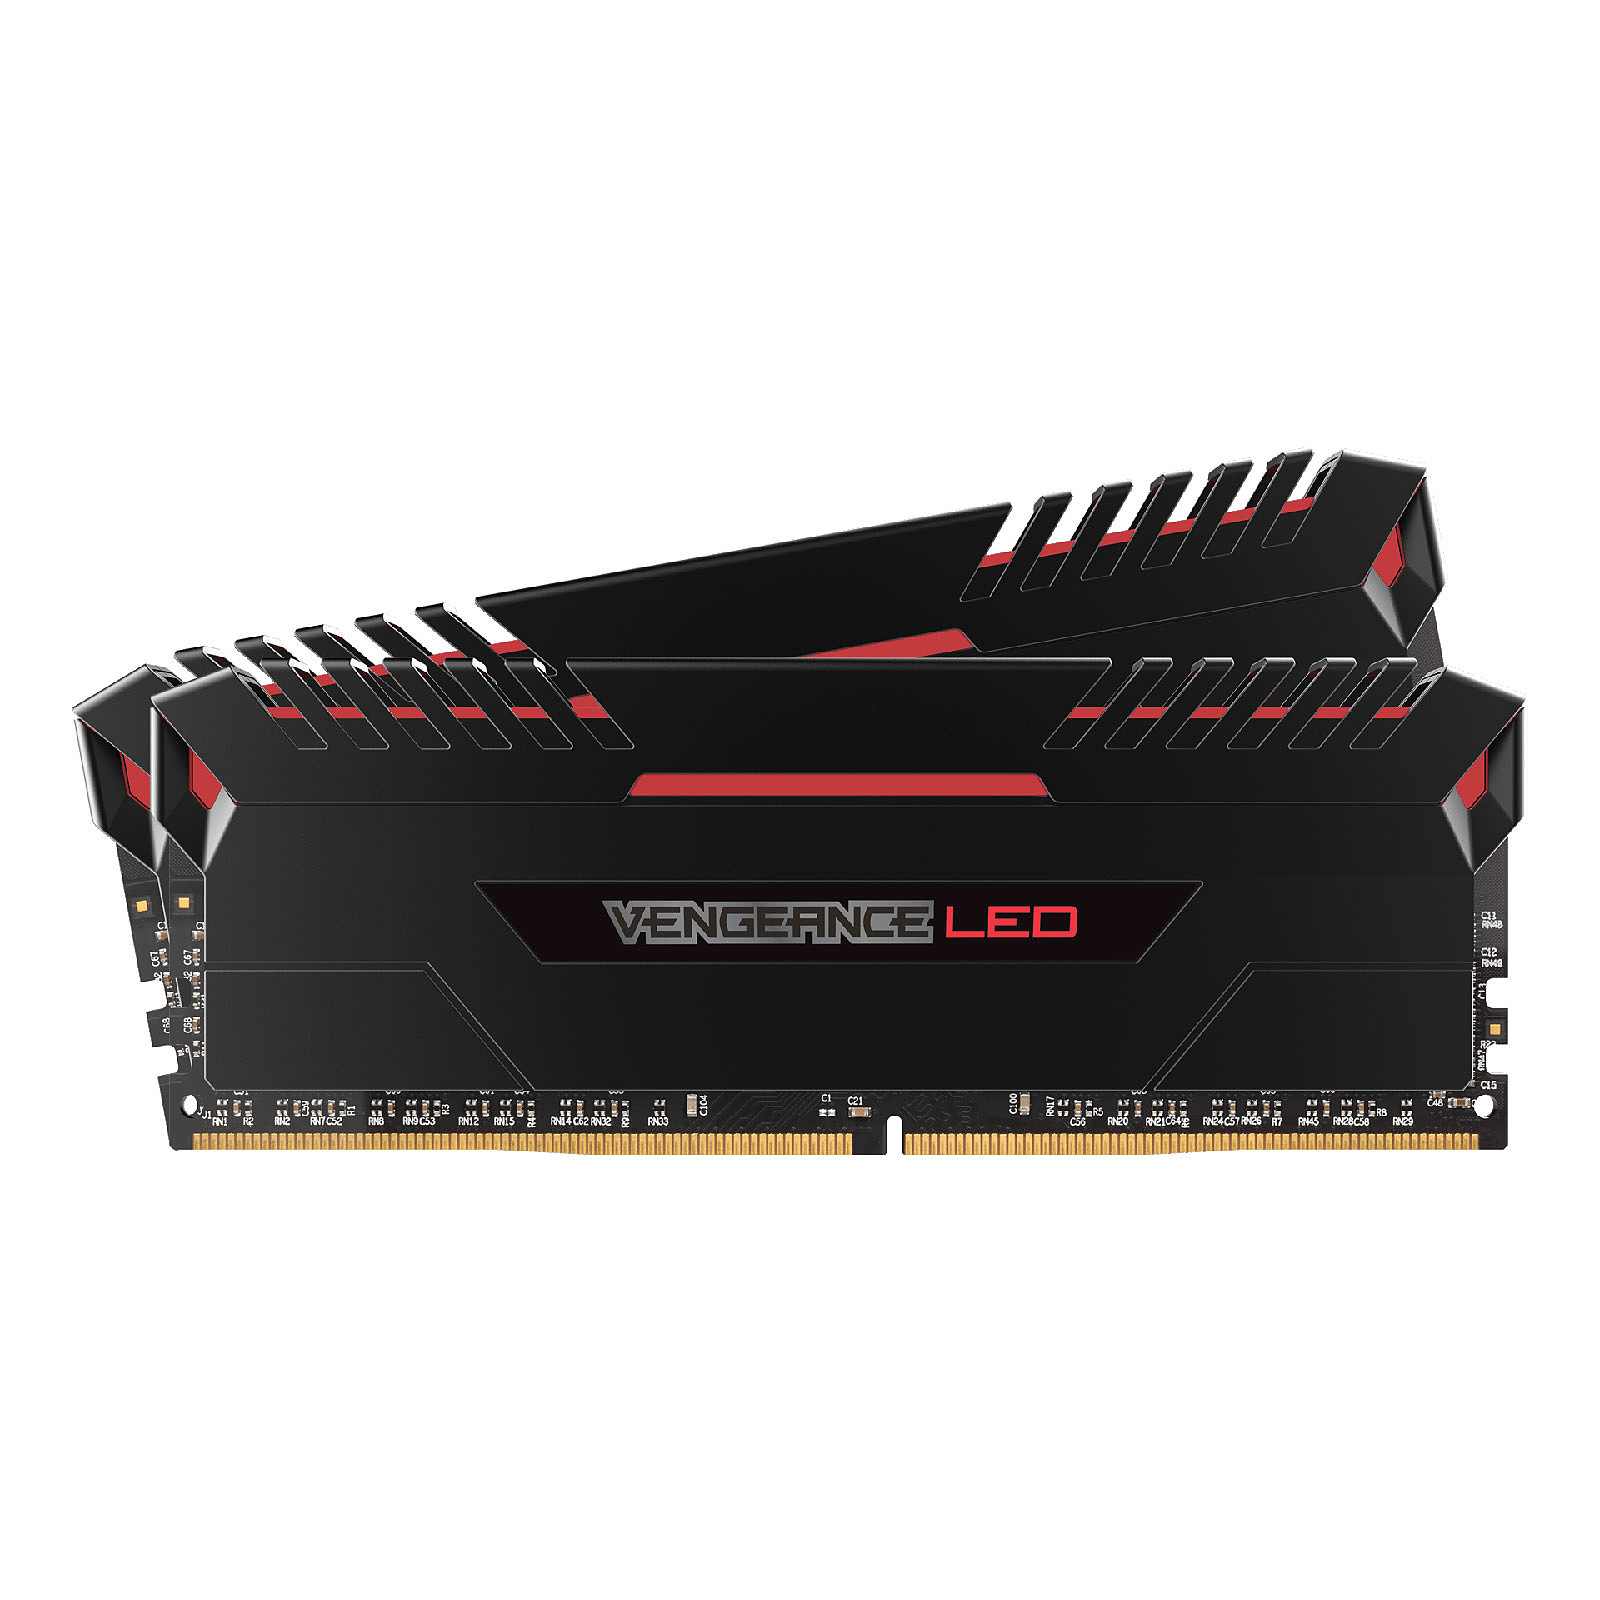 Corsair Vengeance LED Series 32 Go (2x 16 Go) DDR4 3200 MHz CL16